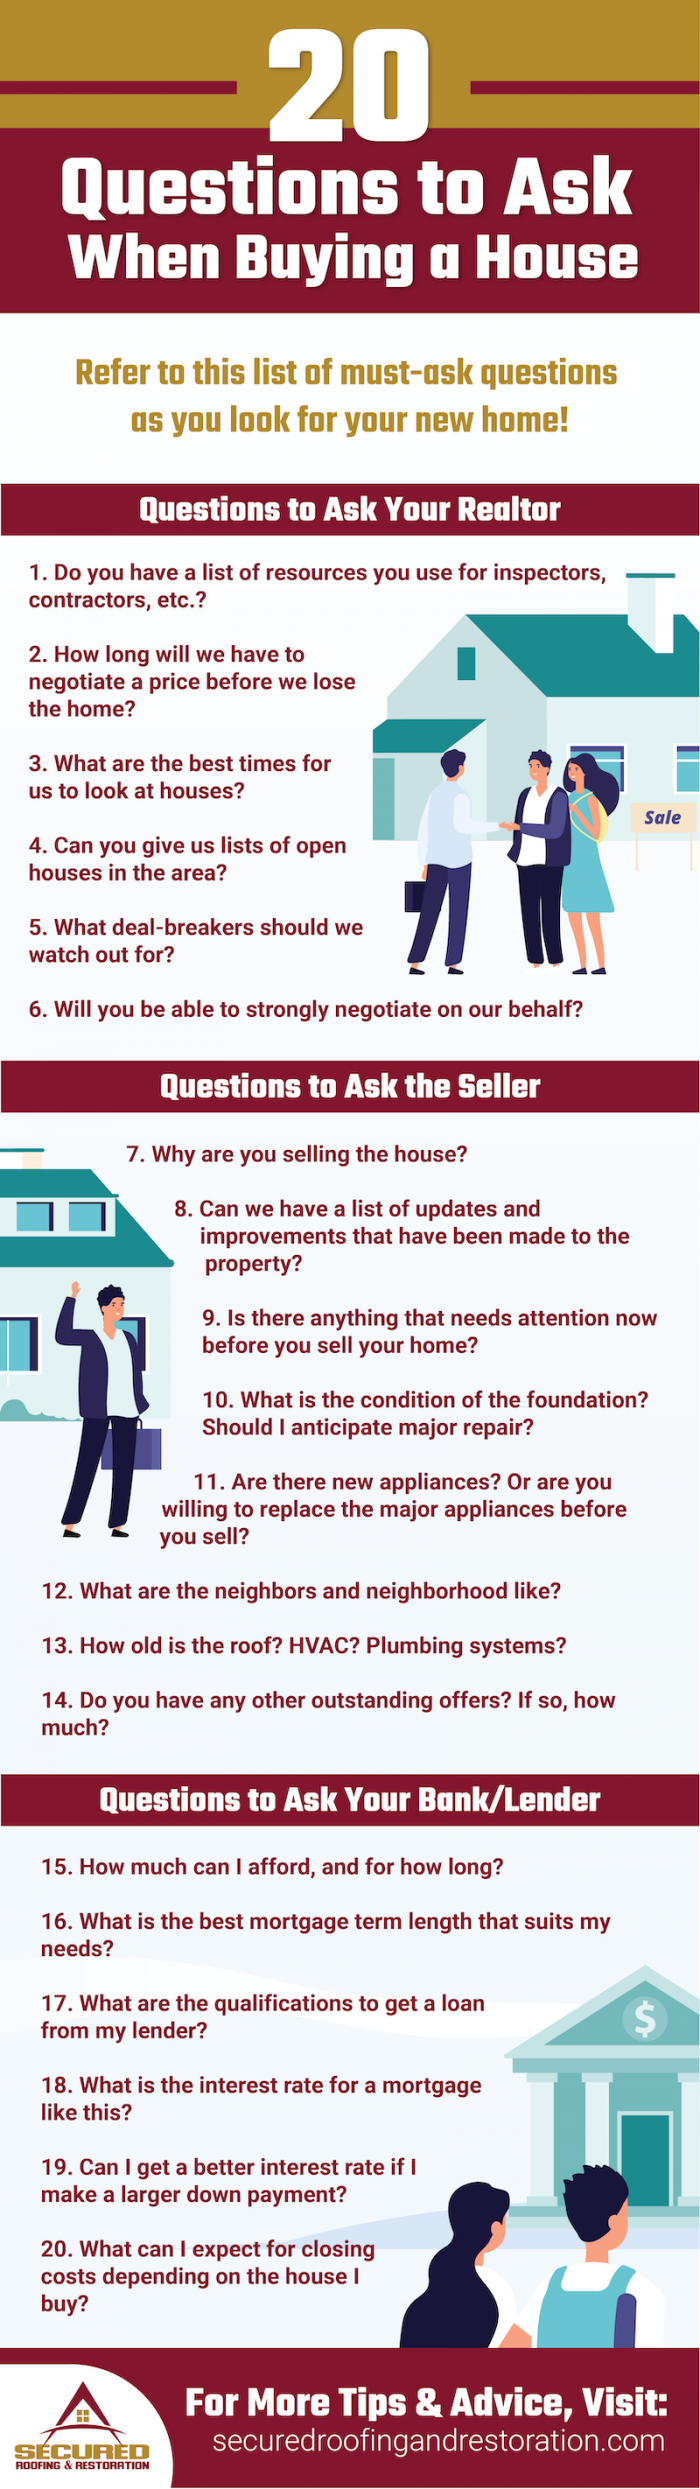 20 questions infographic